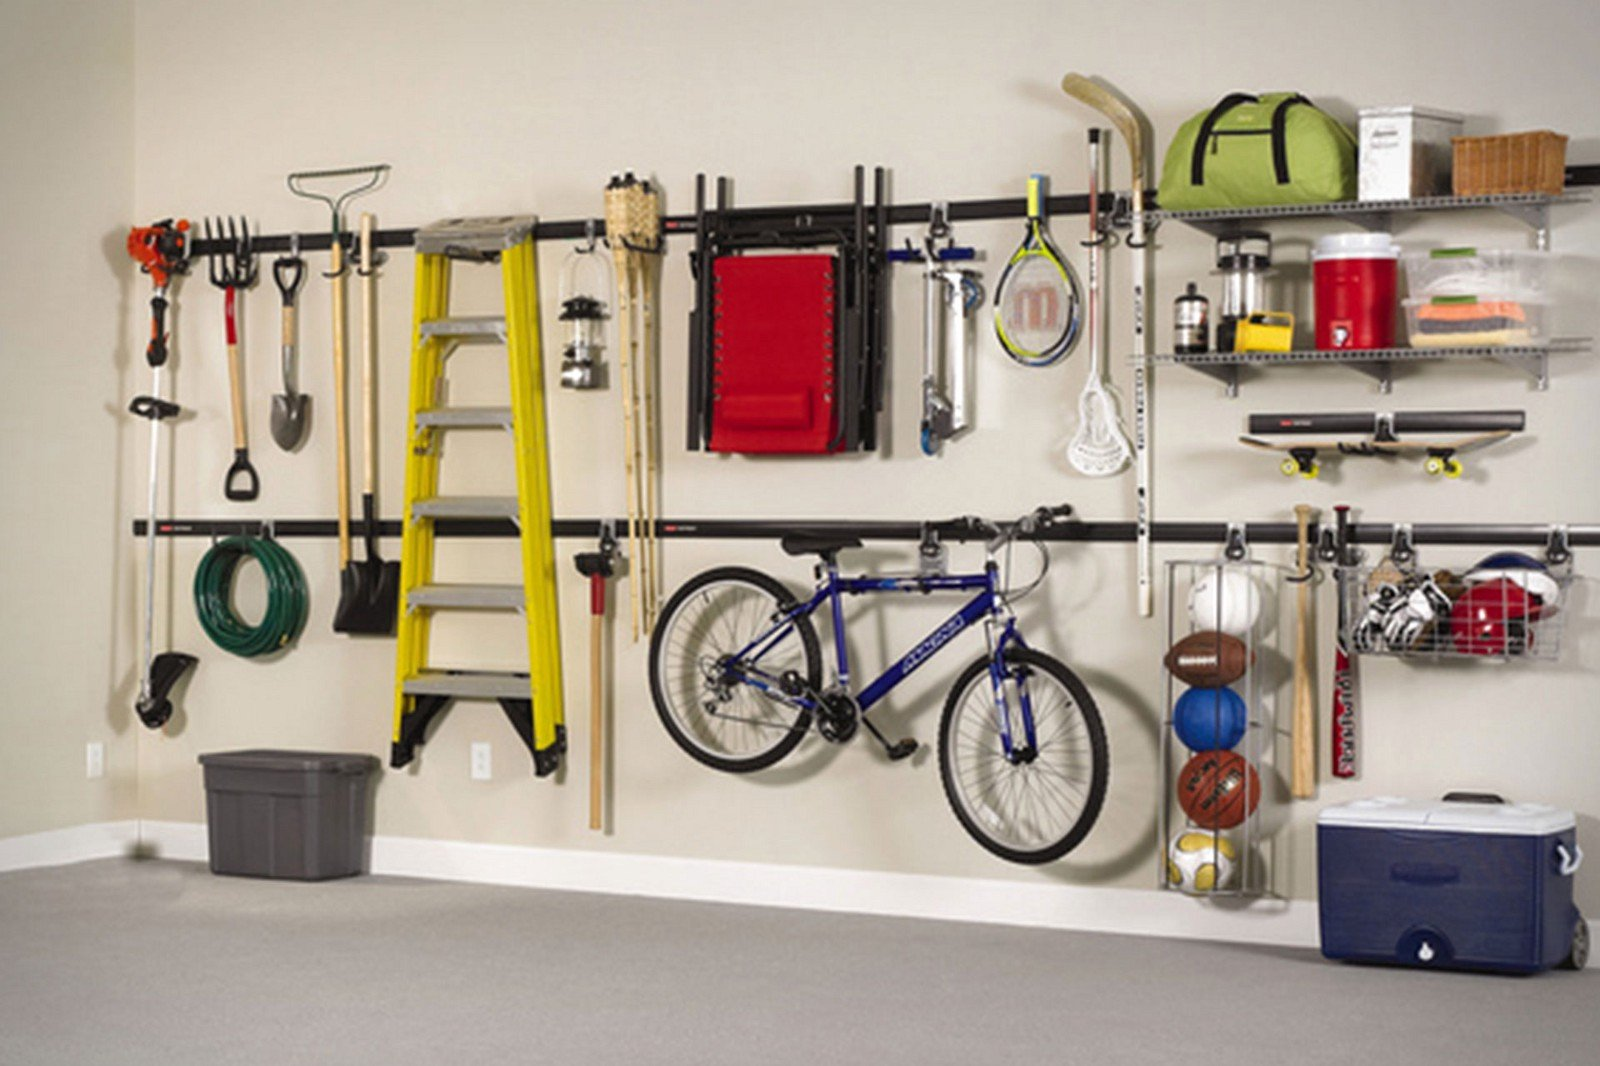 garage tool organization ideas 7 great garage storage ideas west coast self storage 15752